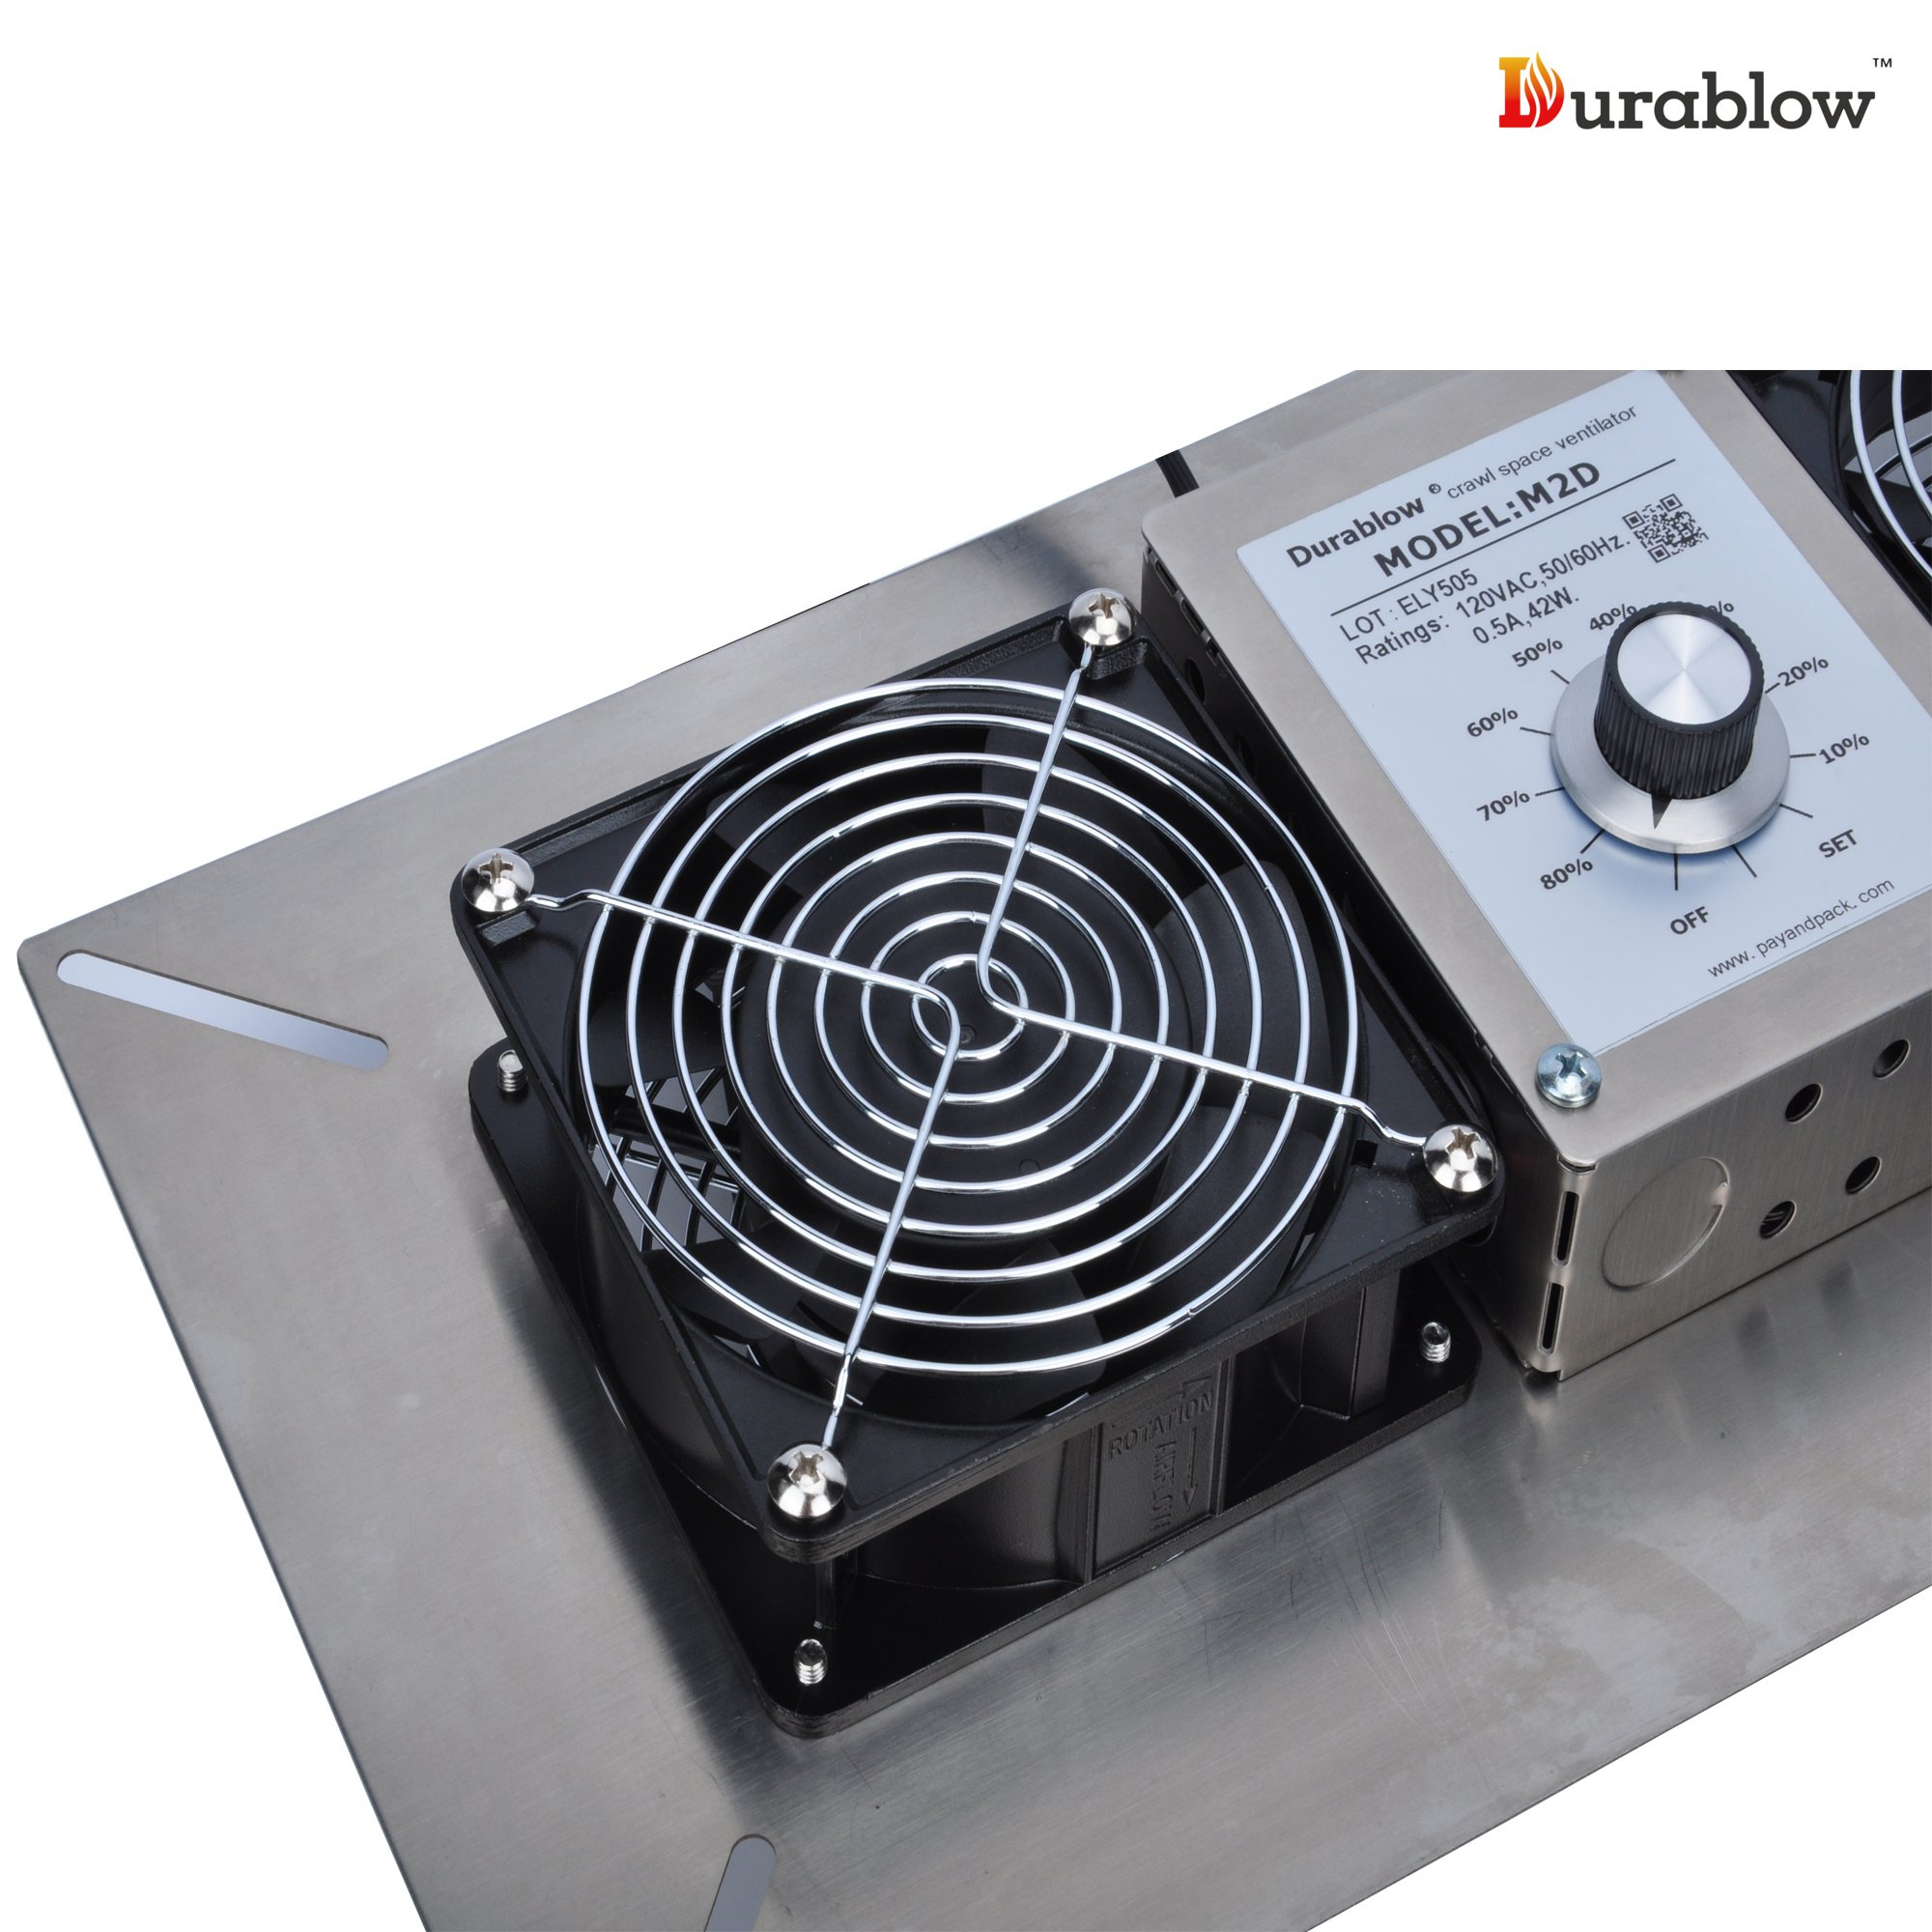 Durablow Stainless Steel Crawl Space Foundation Dual Fans Ventilator + Built-in Dehumidistat (Stainless Steel 304, M2D) by Durablow (Image #5)